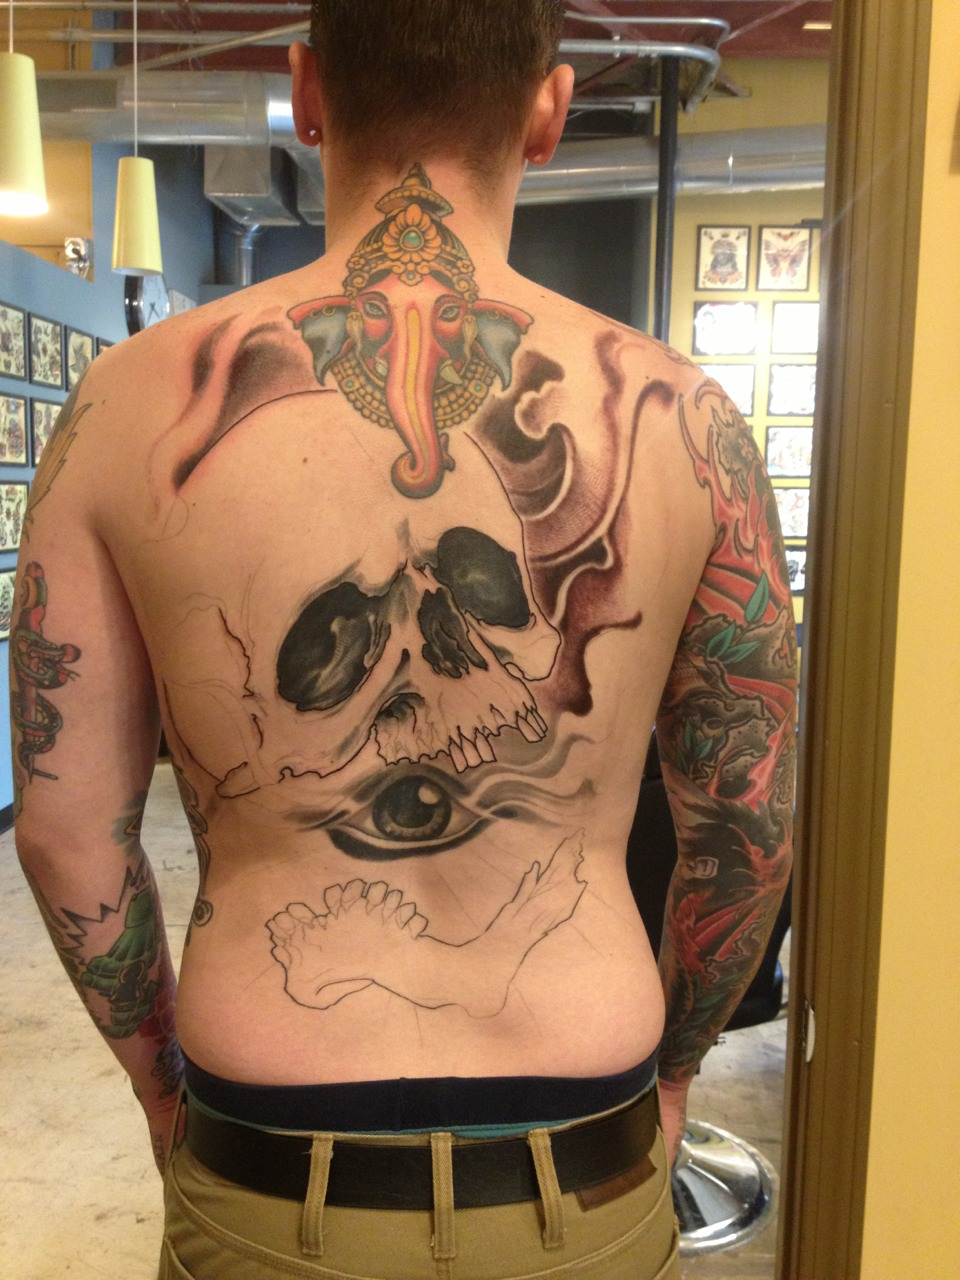 Progress on my buddy's back.